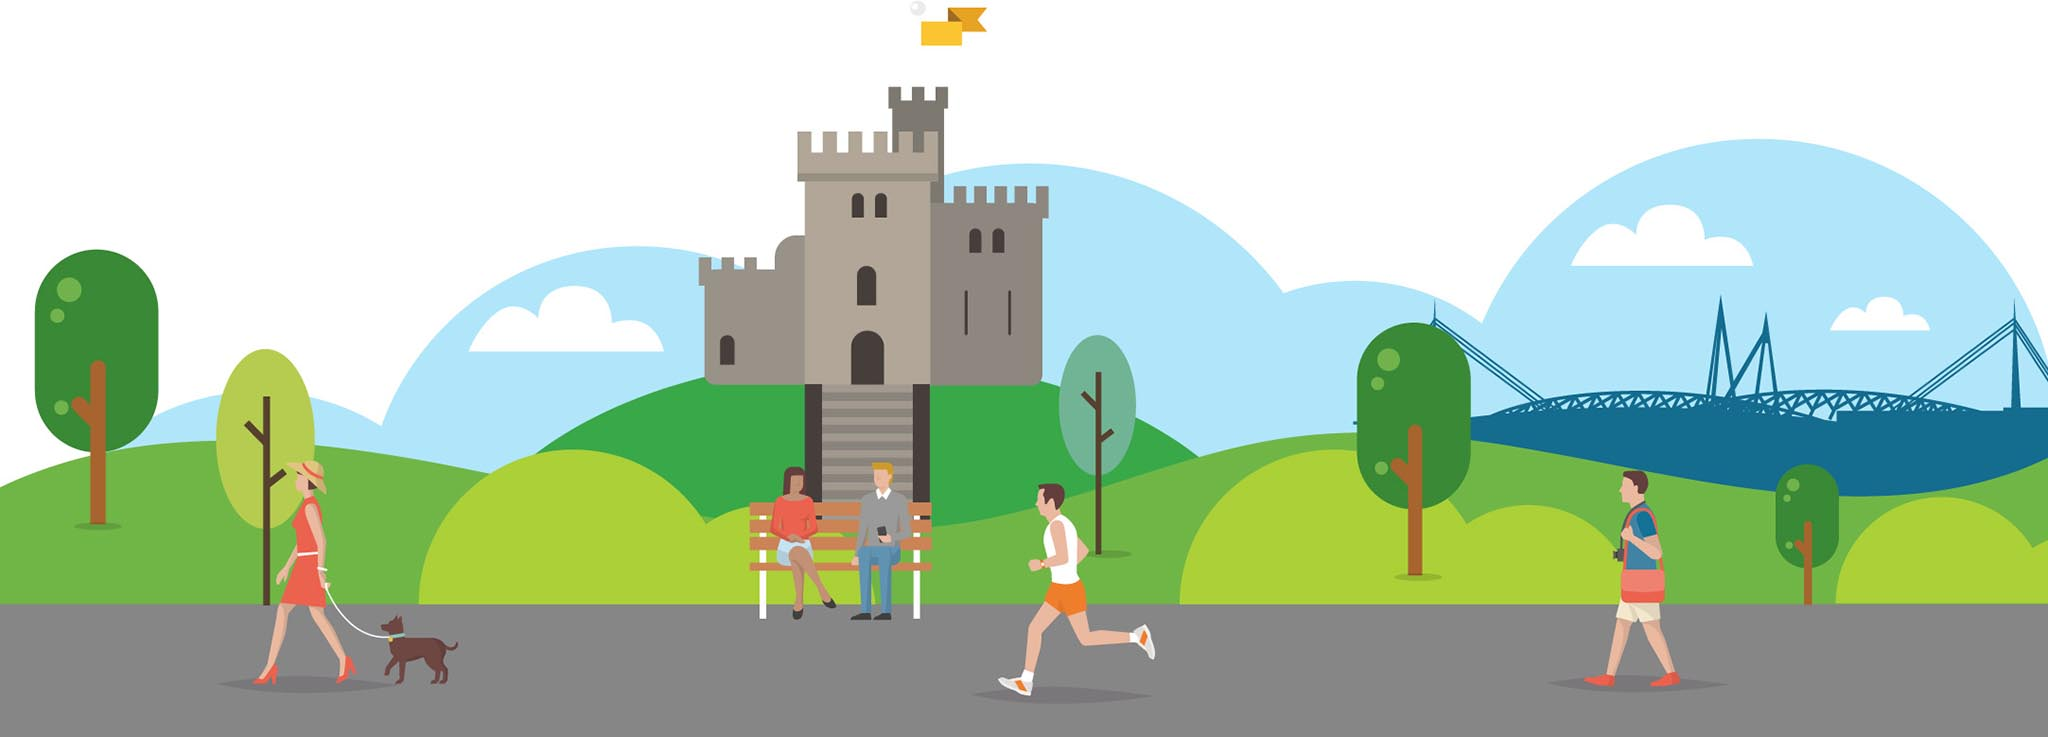 Cardiff castle with people running